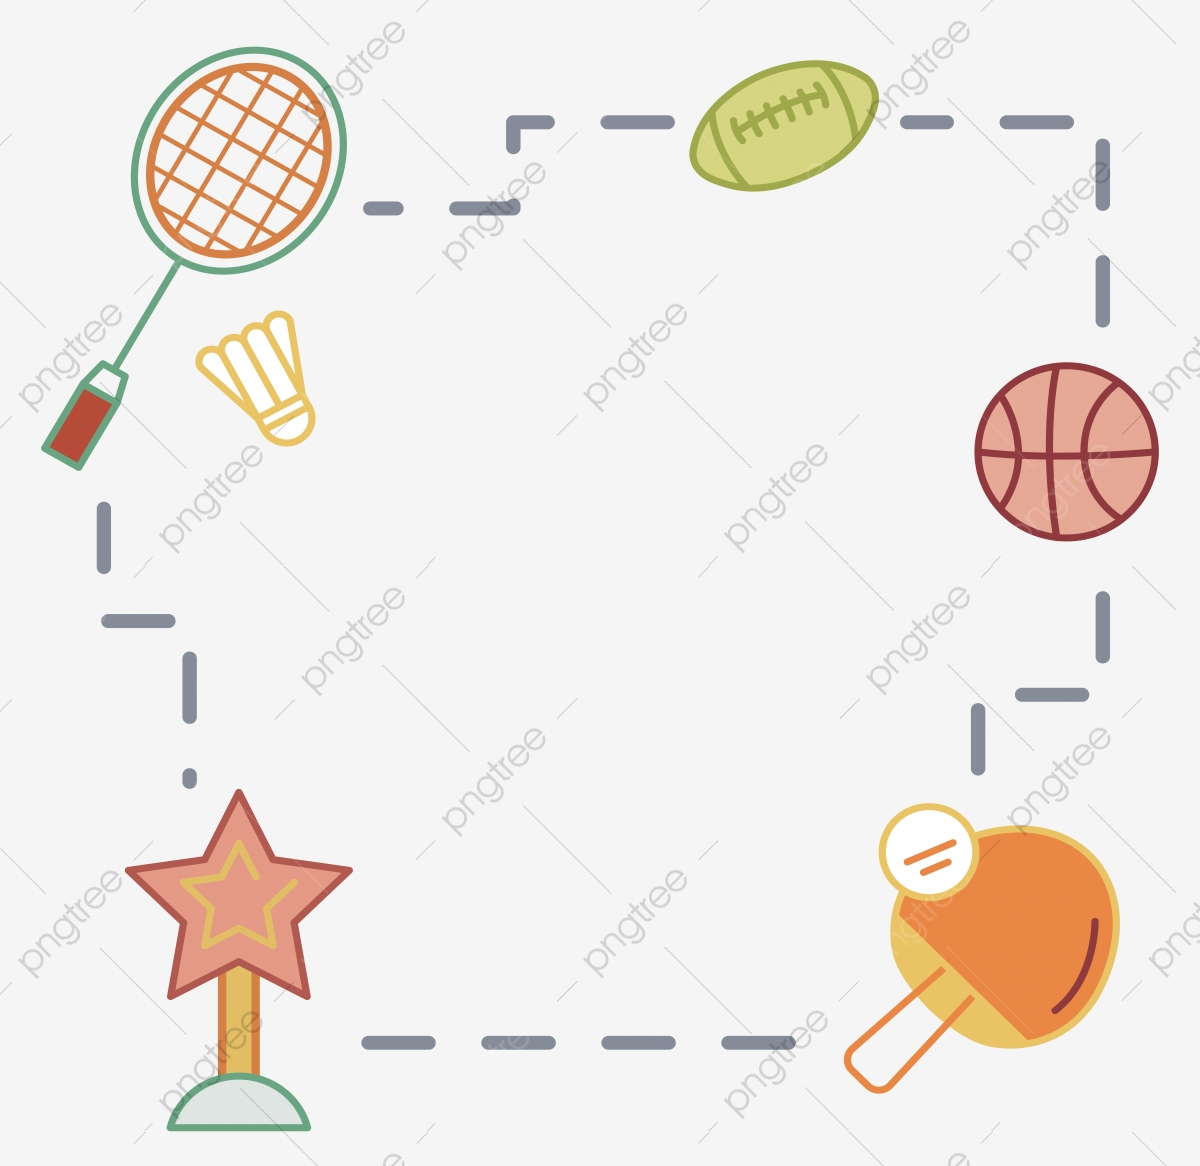 Children Cartoon Hand Painted Sports Ball Stick Figure Decorative Border Vector Simple Cartoon Png And Vector With Transparent Background For Free Download